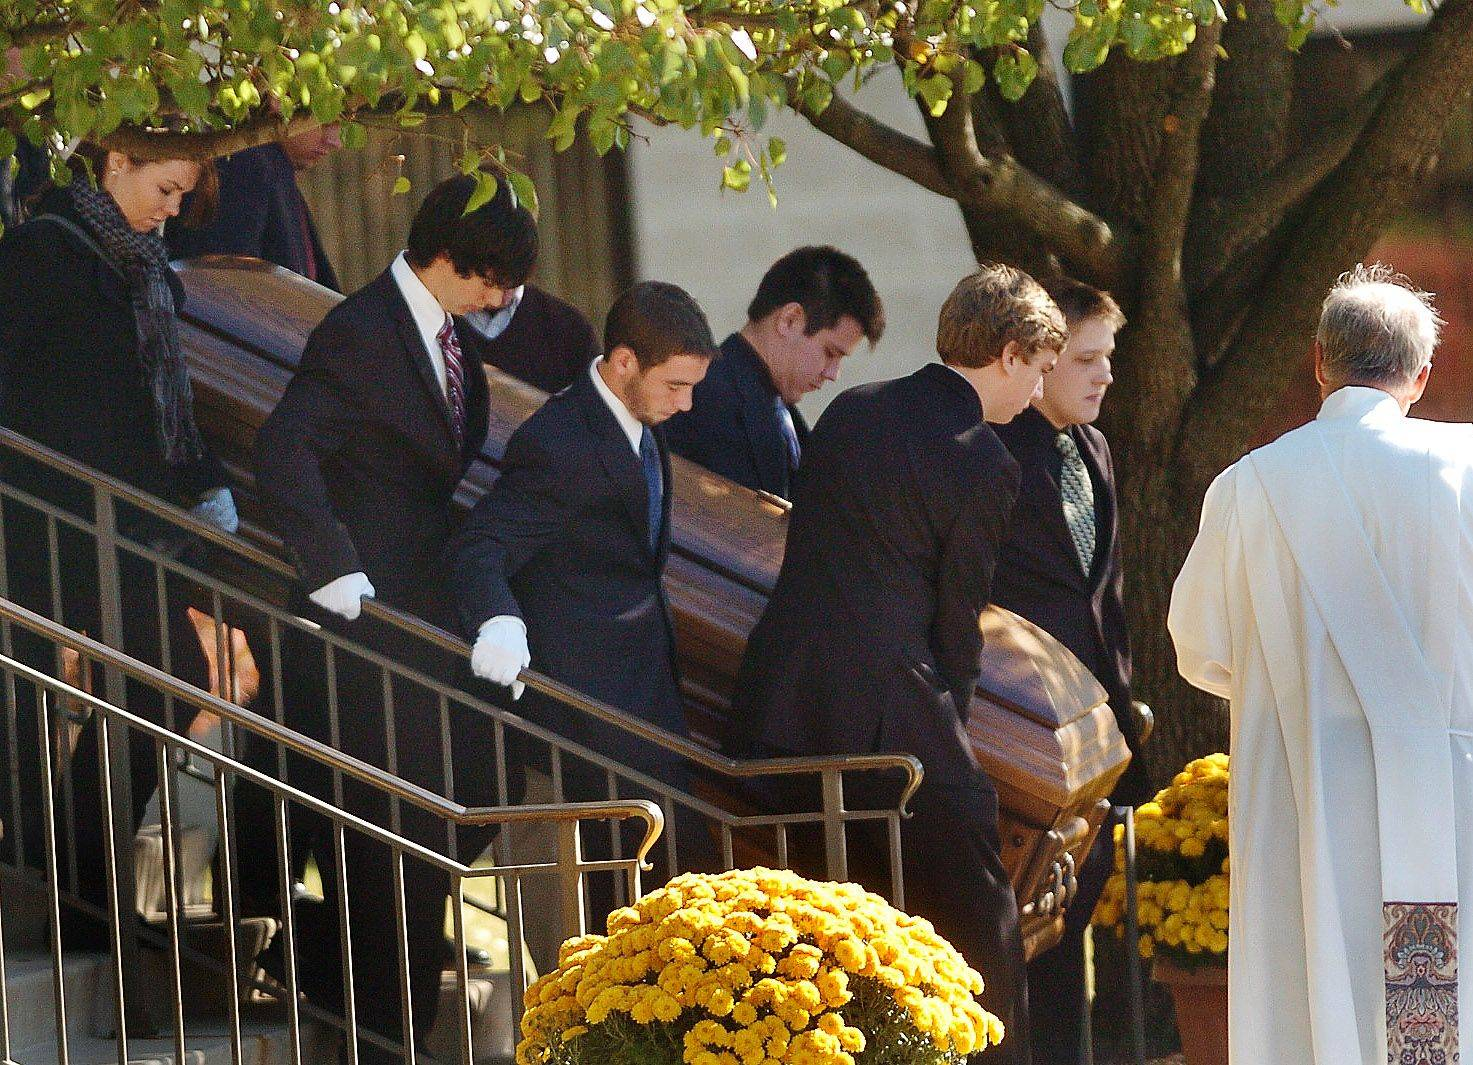 Pallbearers carry the casket of Declan Sullivan out of St. Mary Catholic Church after his funeral.